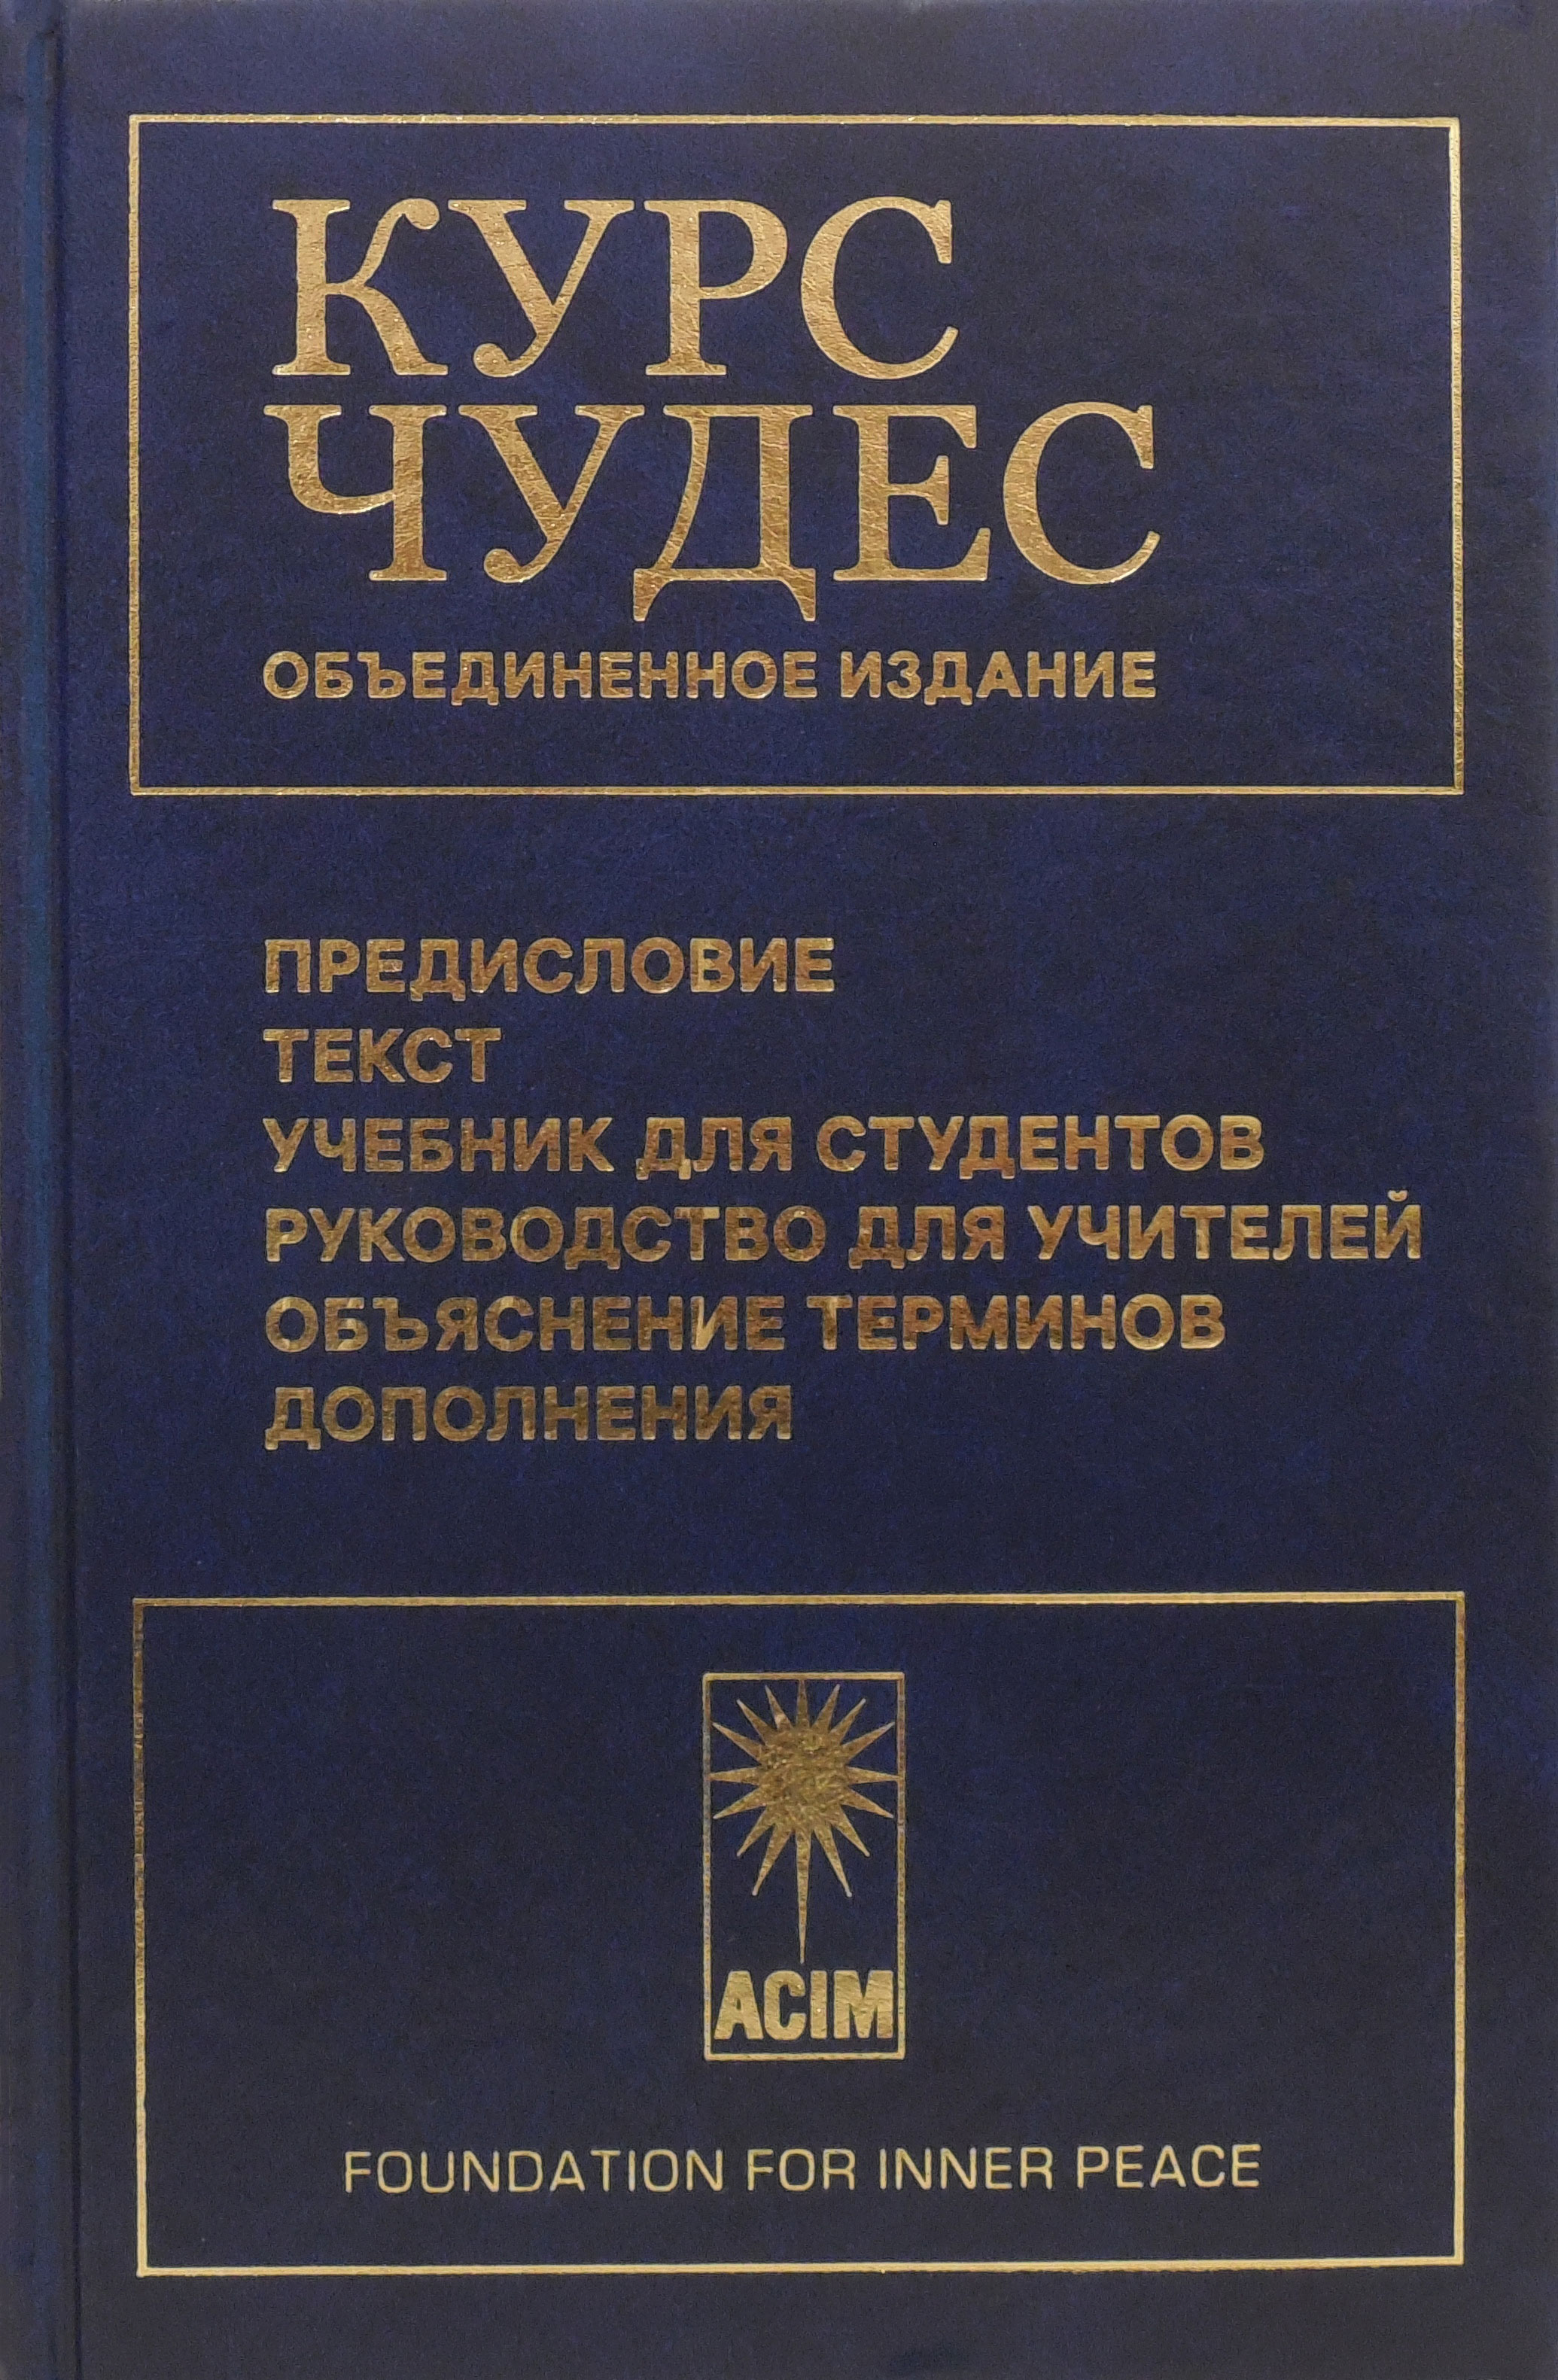 photo - book cover: KYPC ЧУДEC - Russian 2nd Edition (Hardcover) - translation of A Course in Miracles; combined volume; front cover